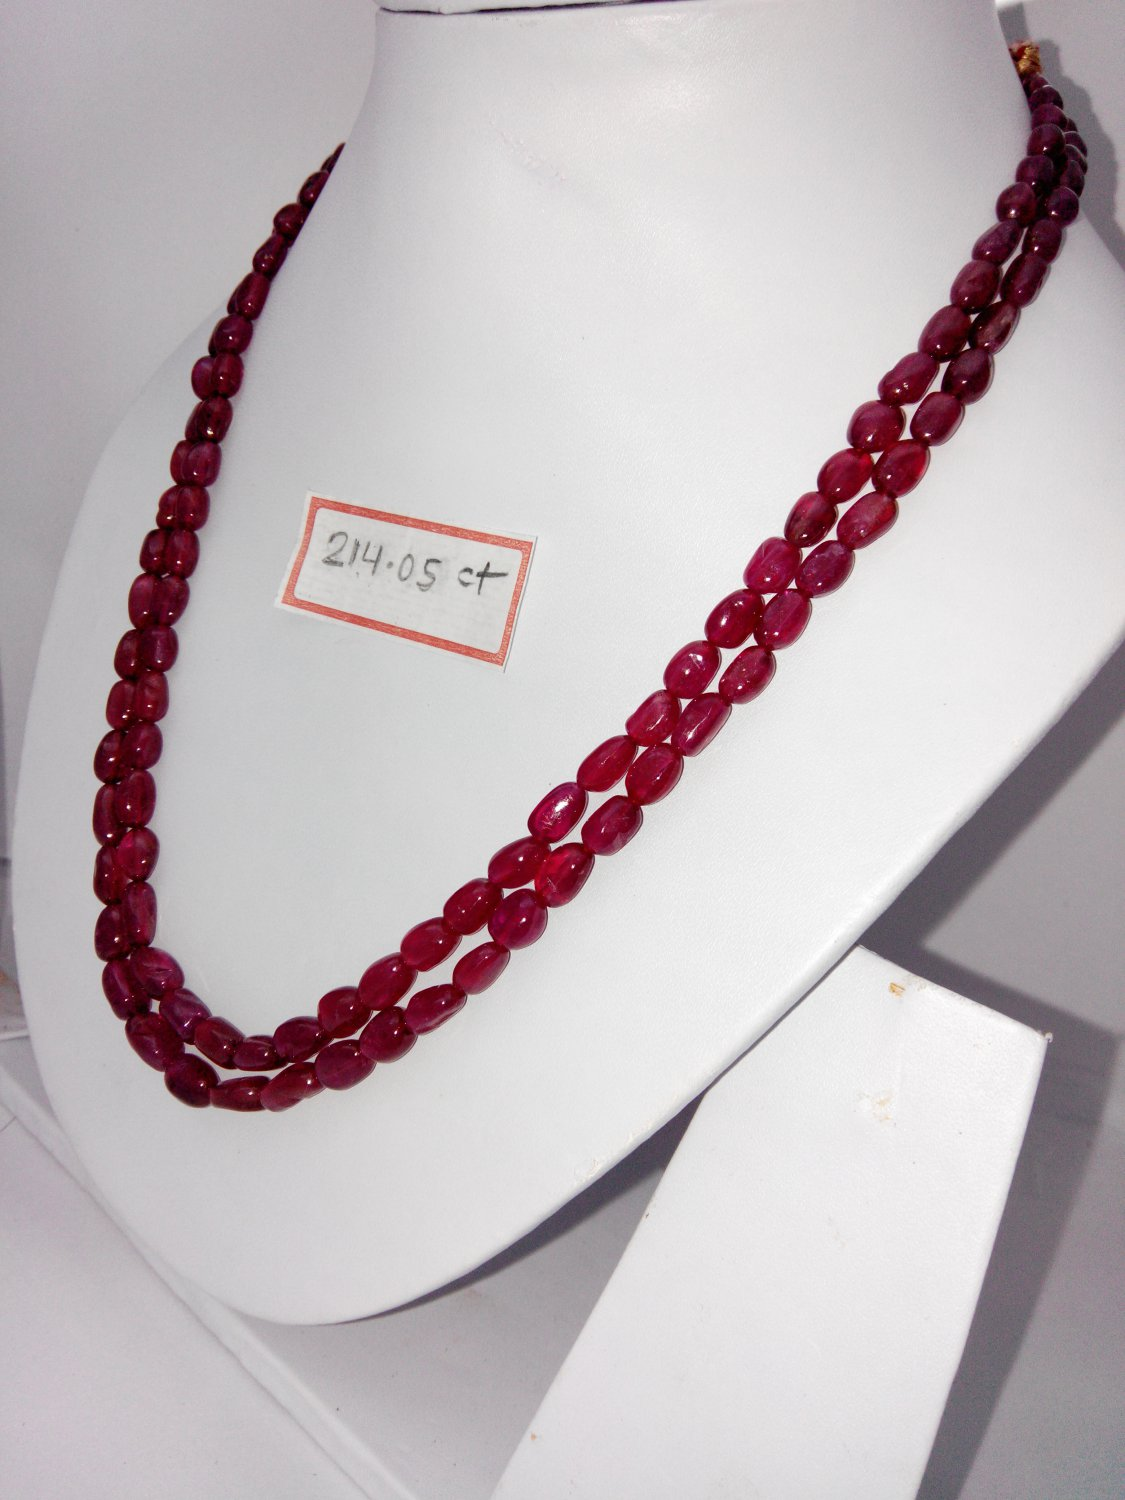 Certified Fissure Filled Ruby necklace of 241.05 cts Fancy Round Beads plane Polish